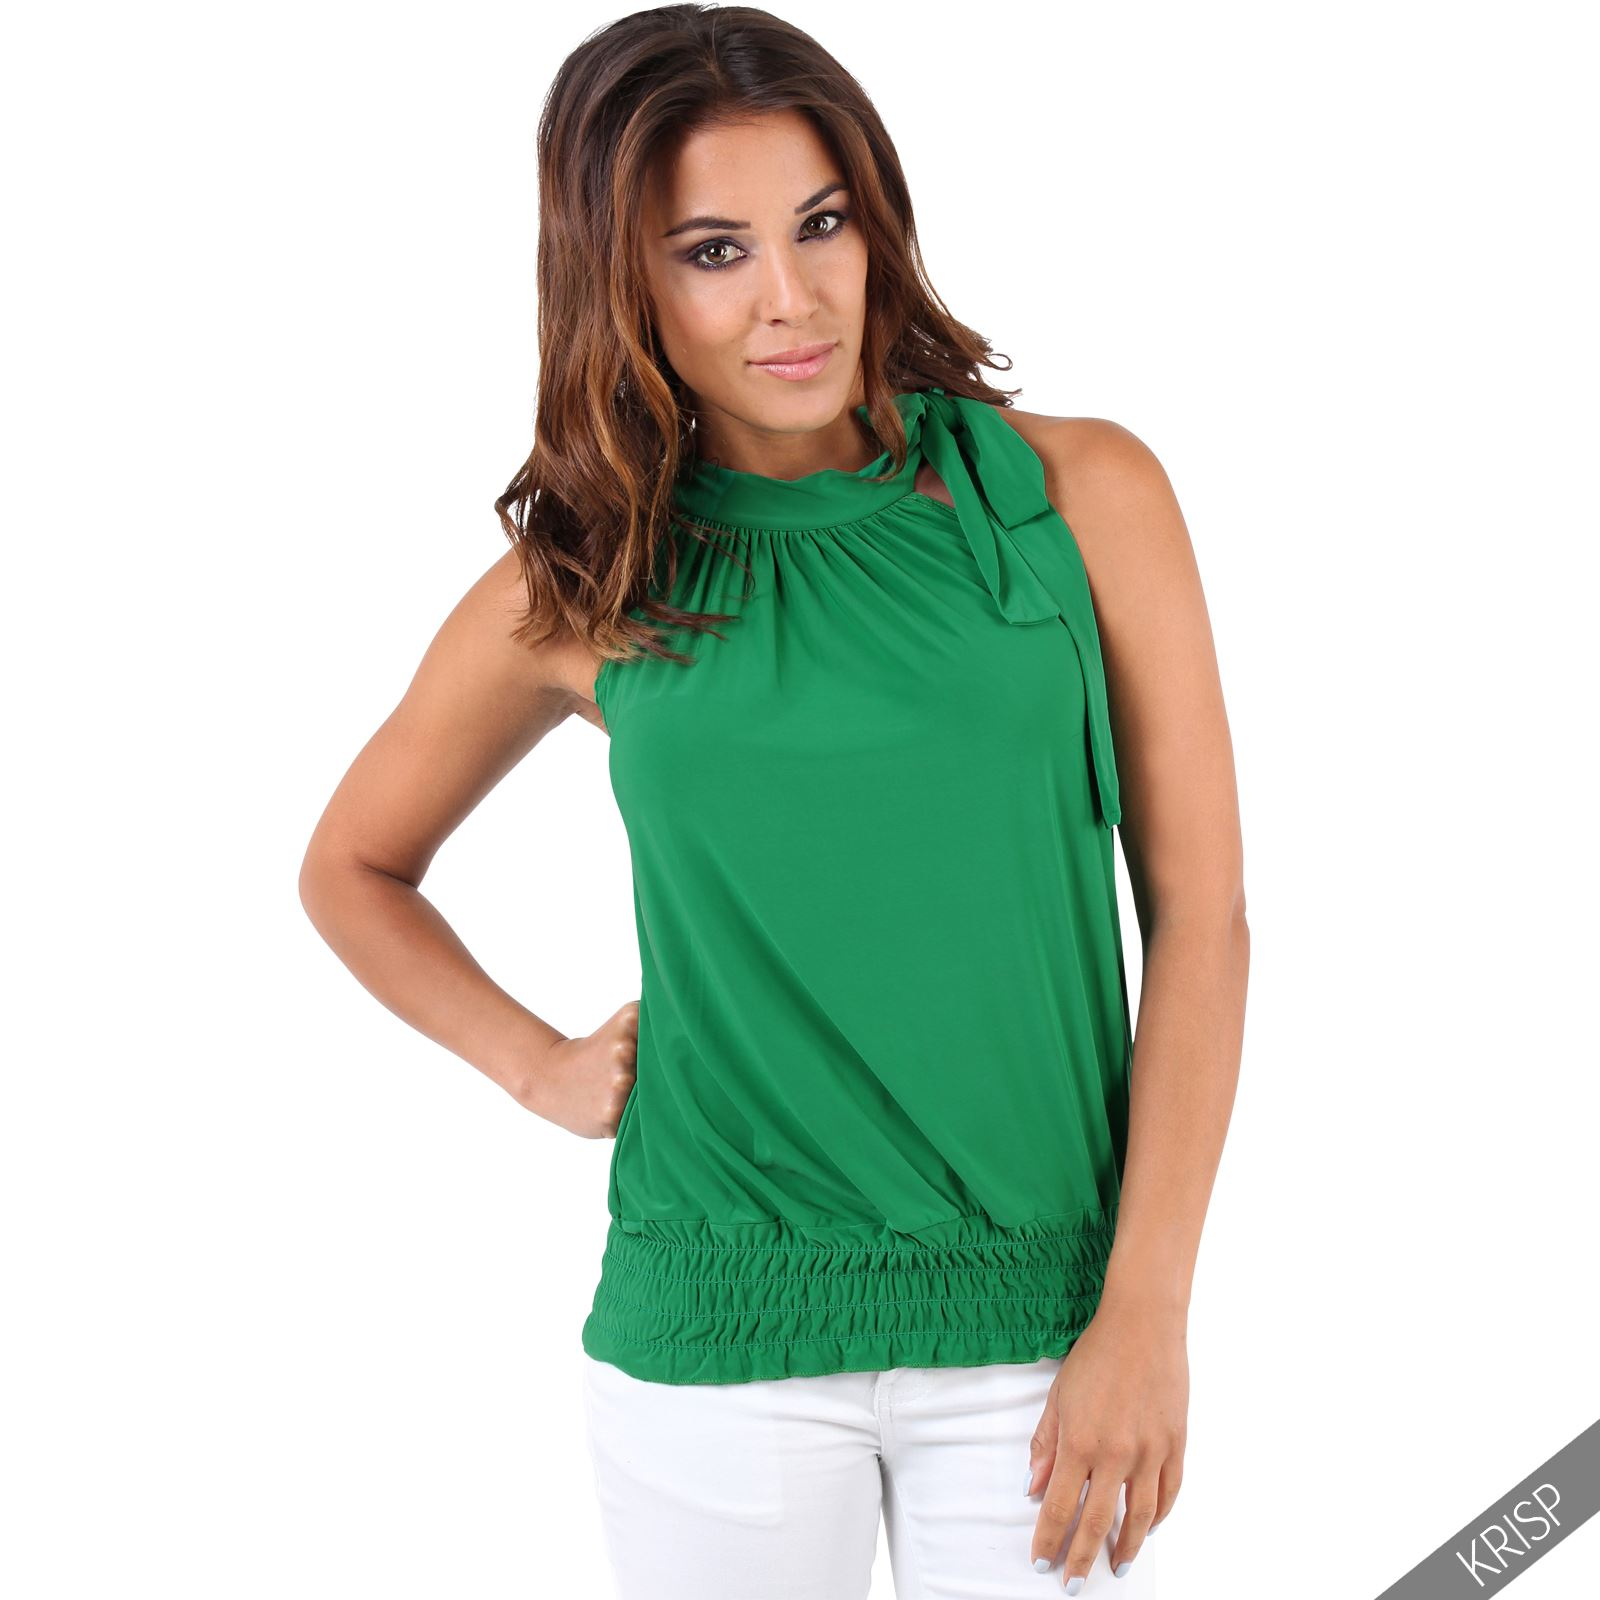 Find women's halter tops at ShopStyle. Shop the latest collection of women's halter tops from the most popular stores - all in one place.